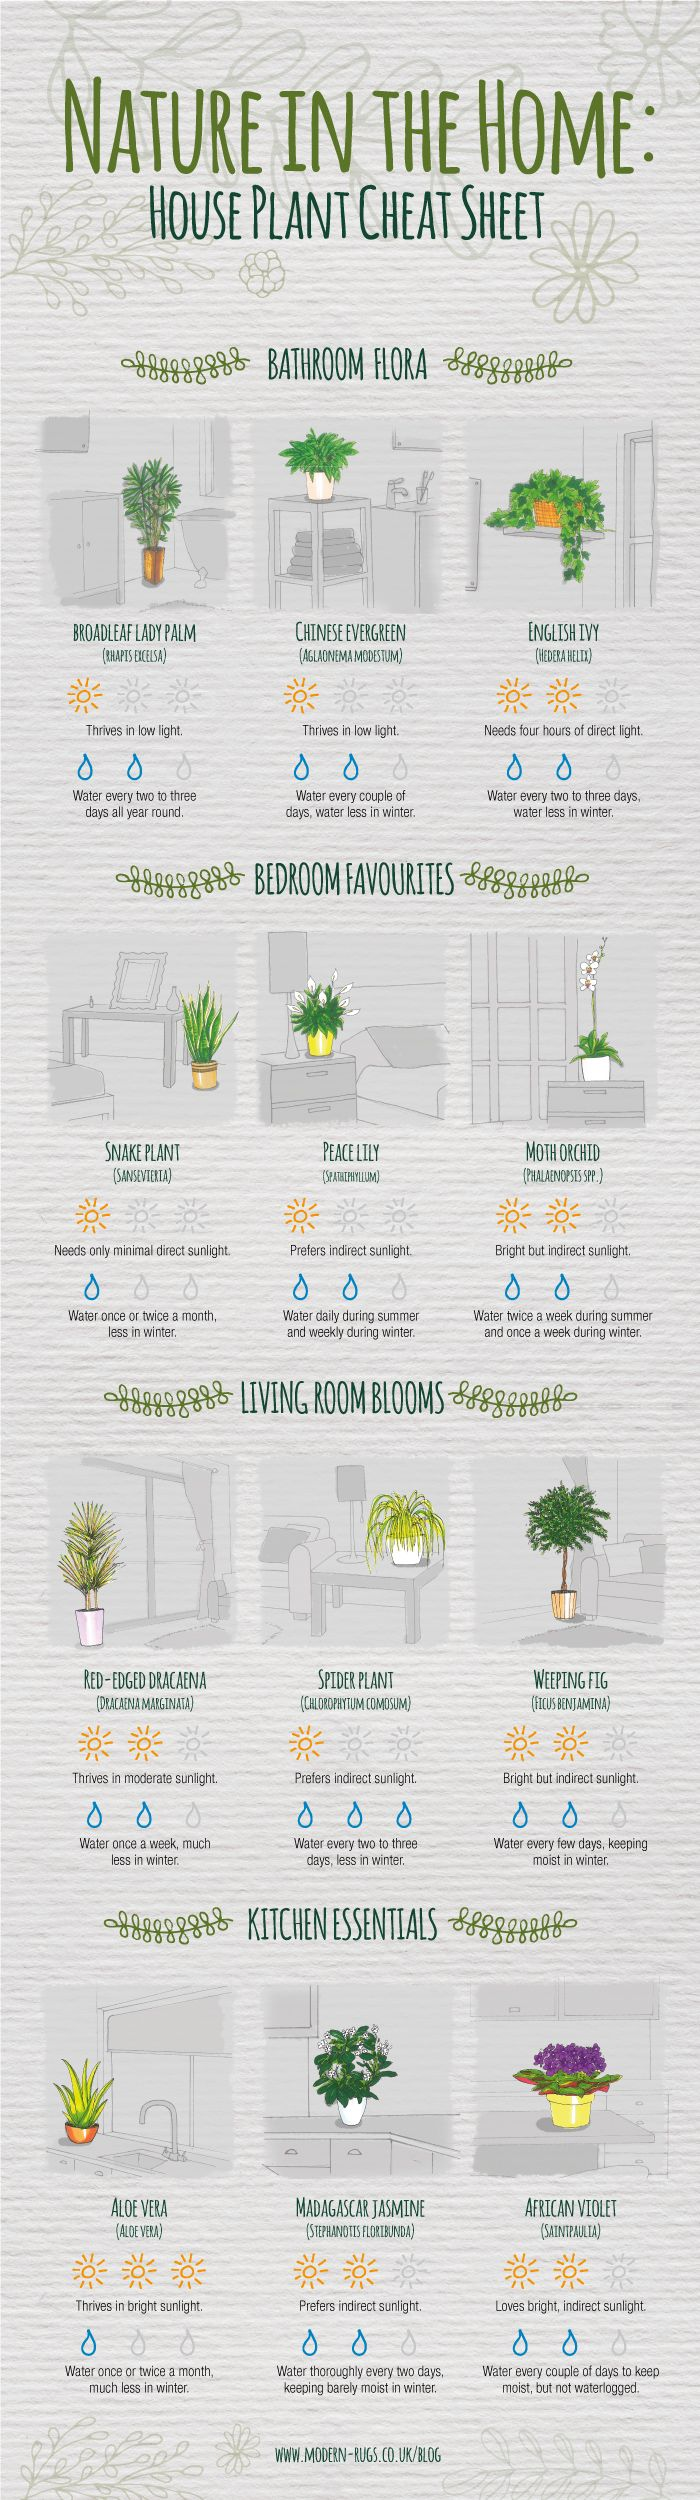 Indoor garden plants are easier than you think with this cheat sheet!